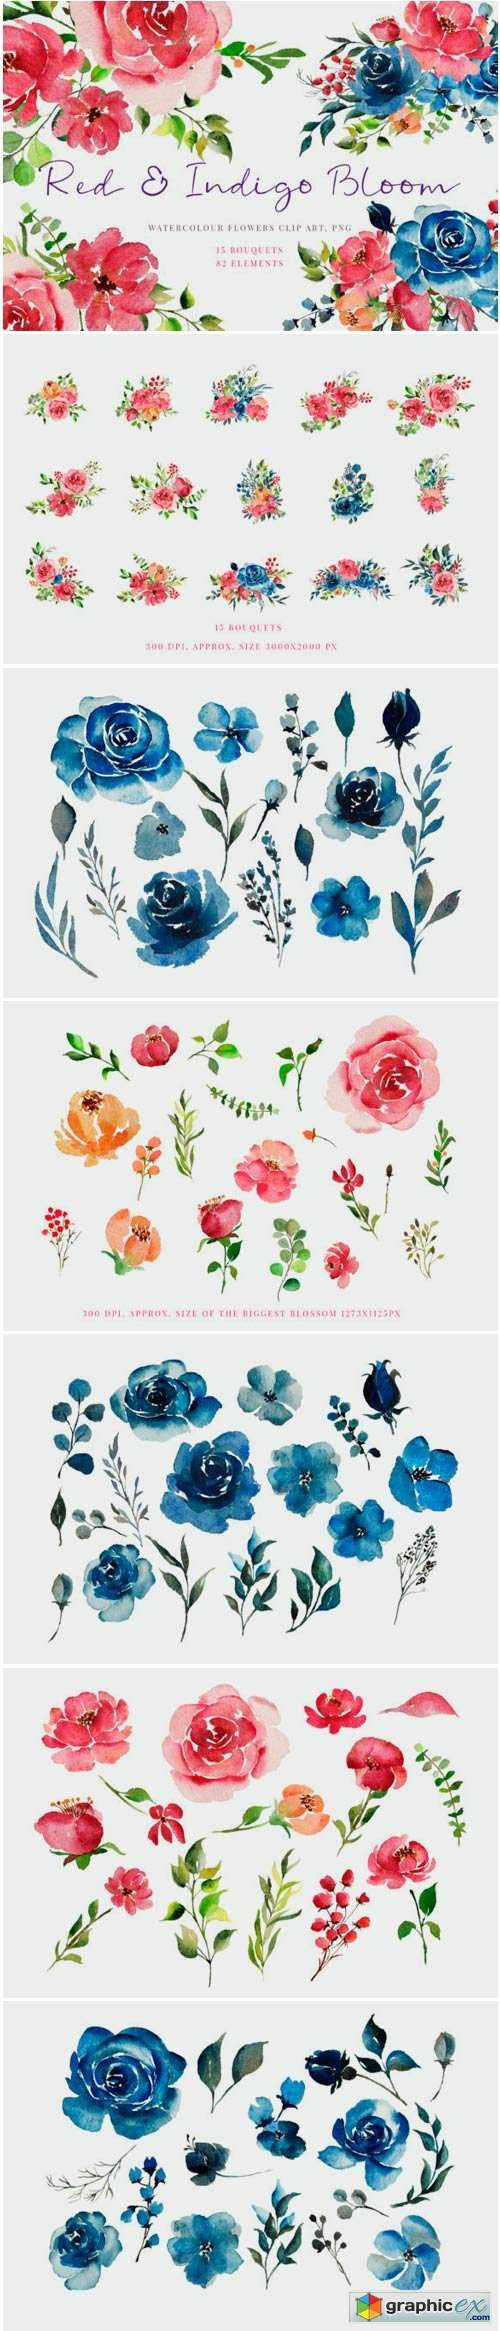 Handpainted Red & Indigo Flowers